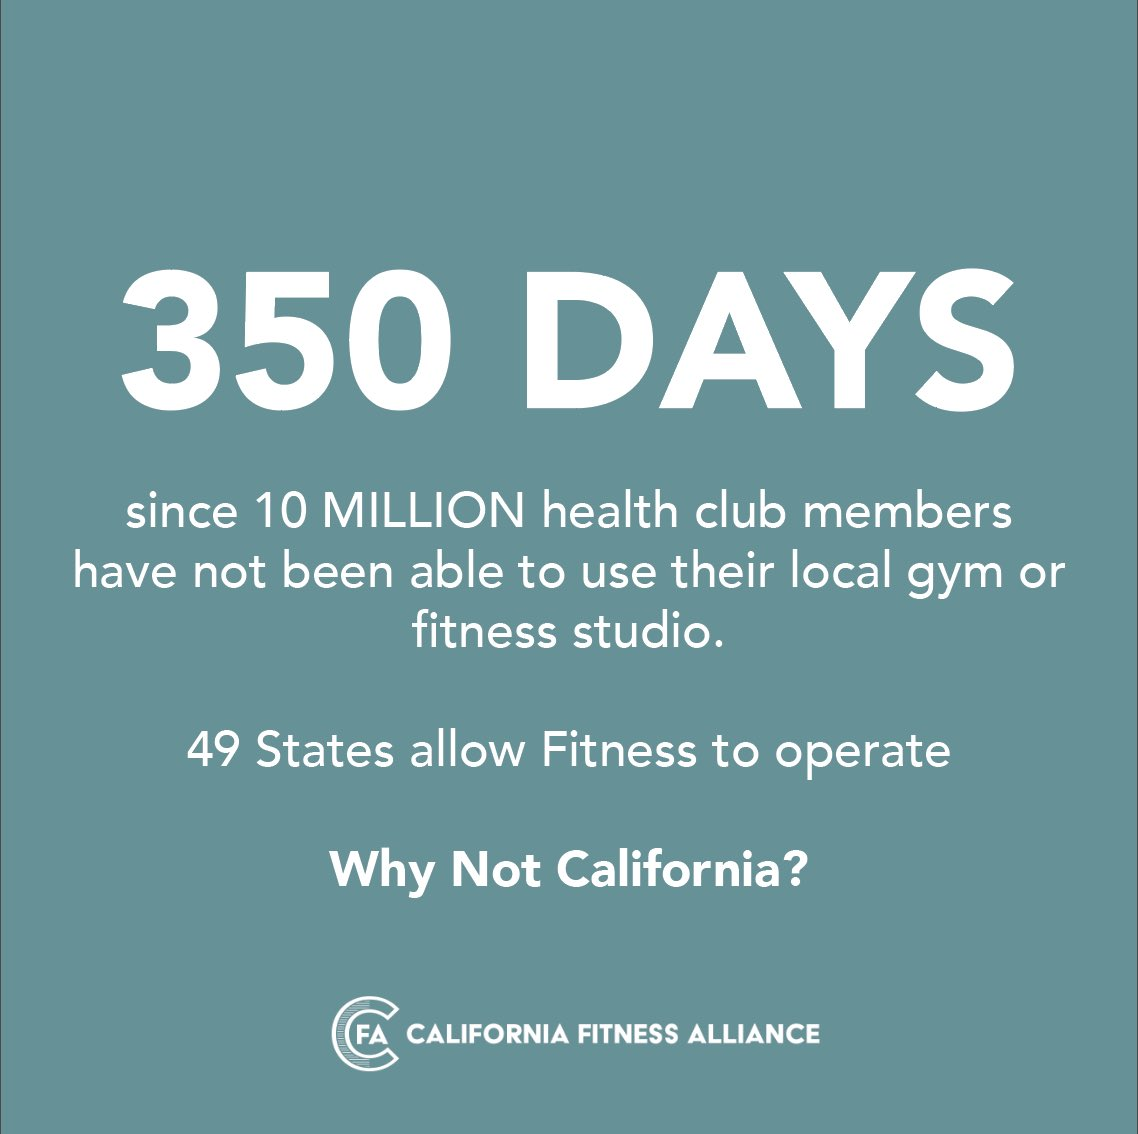 It has been 350 days since Californians, could consistently exercise indoors. We need @CAGovernor, @gavinneesom, @repmikegarcia and @scottwilkca to help reopen fitness  Let us get back to work  #CAleg #SaveFitness #MentalHealth #LetUsExercise #FitnessIsEssential #OpenFitnessNow